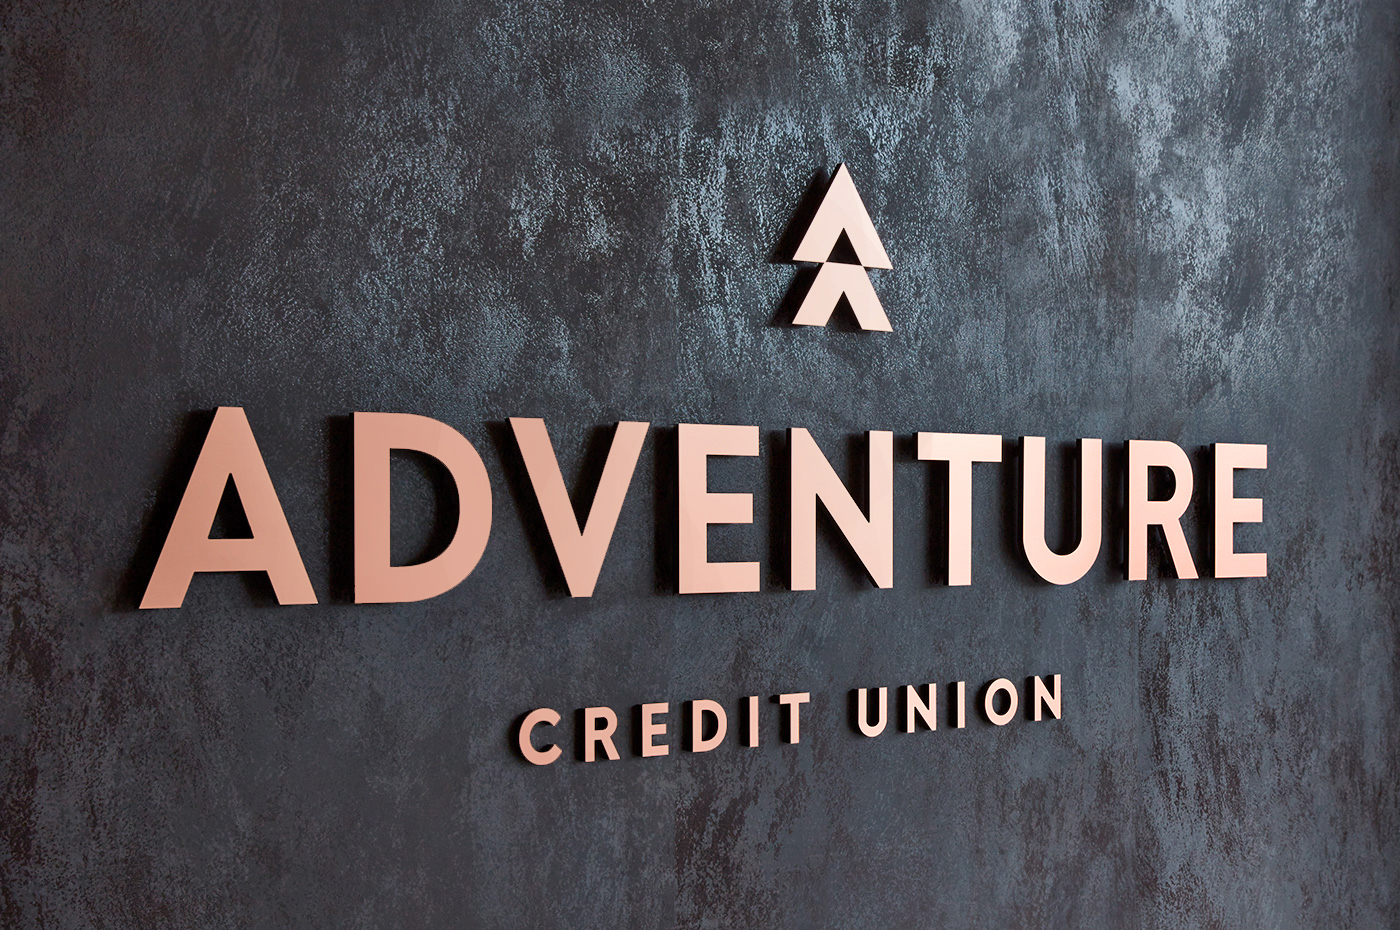 Adventure Credit Union Brand Wall